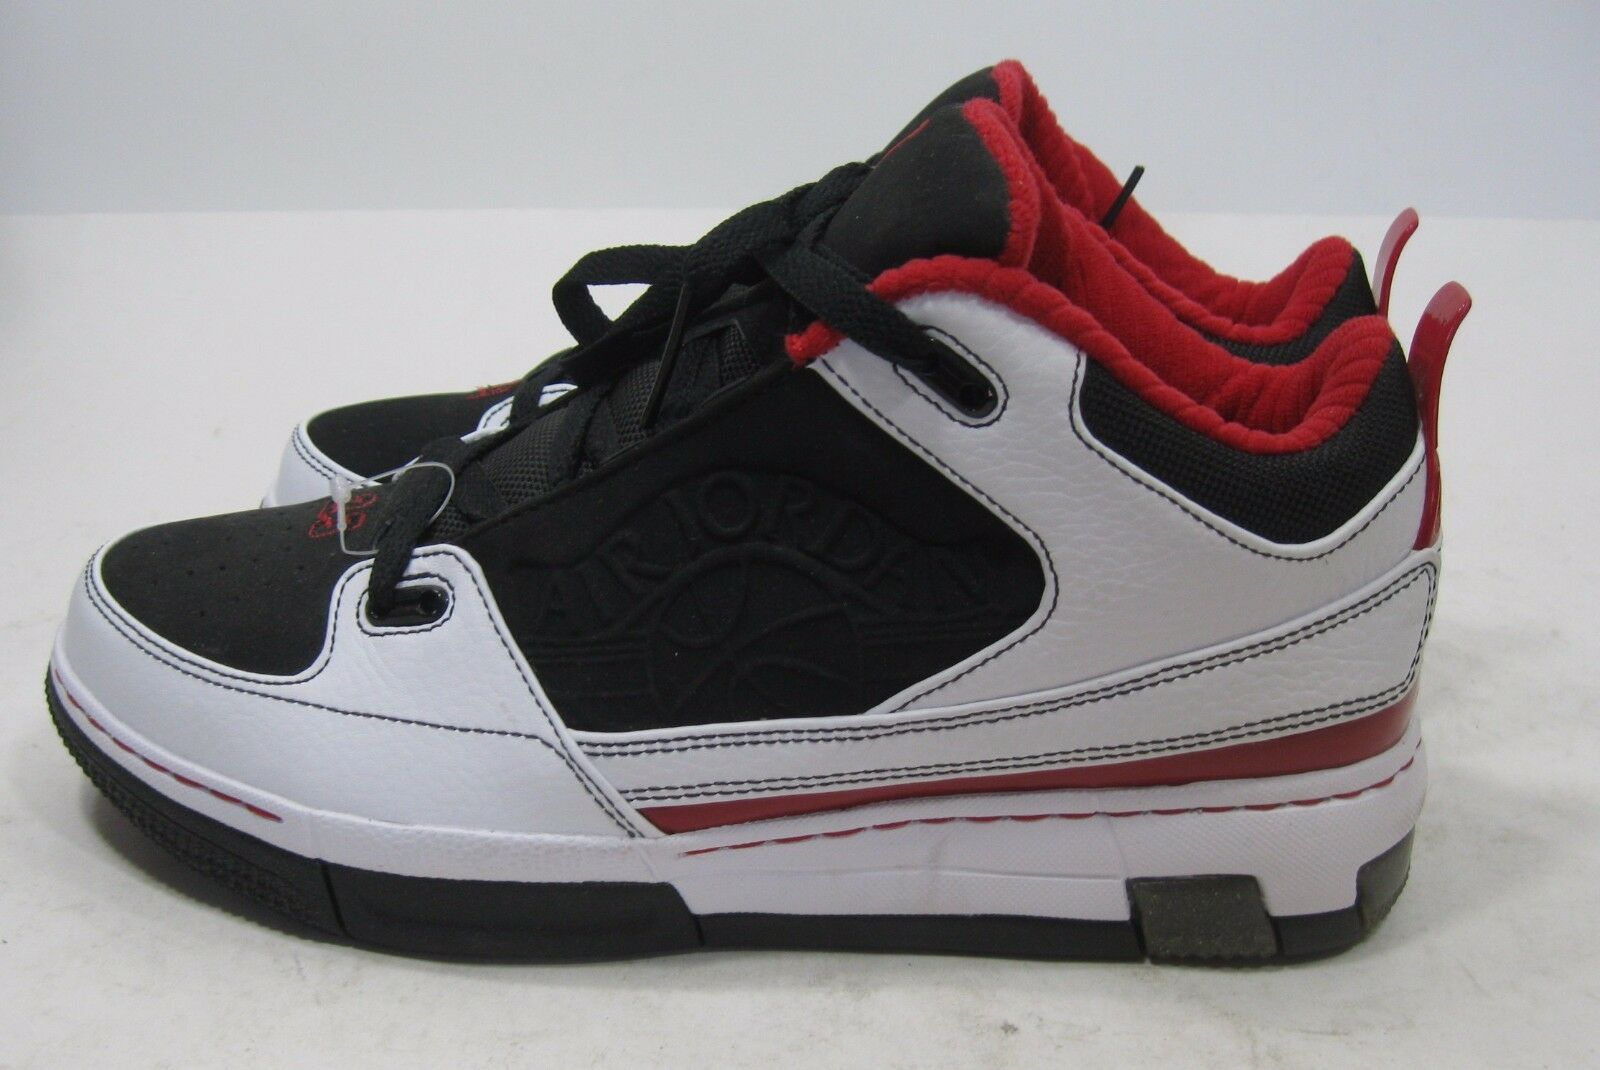 Air Jordan Ol'School II Low 343065-102 White/Black-Varsity Red Comfortable Cheap women's shoes women's shoes